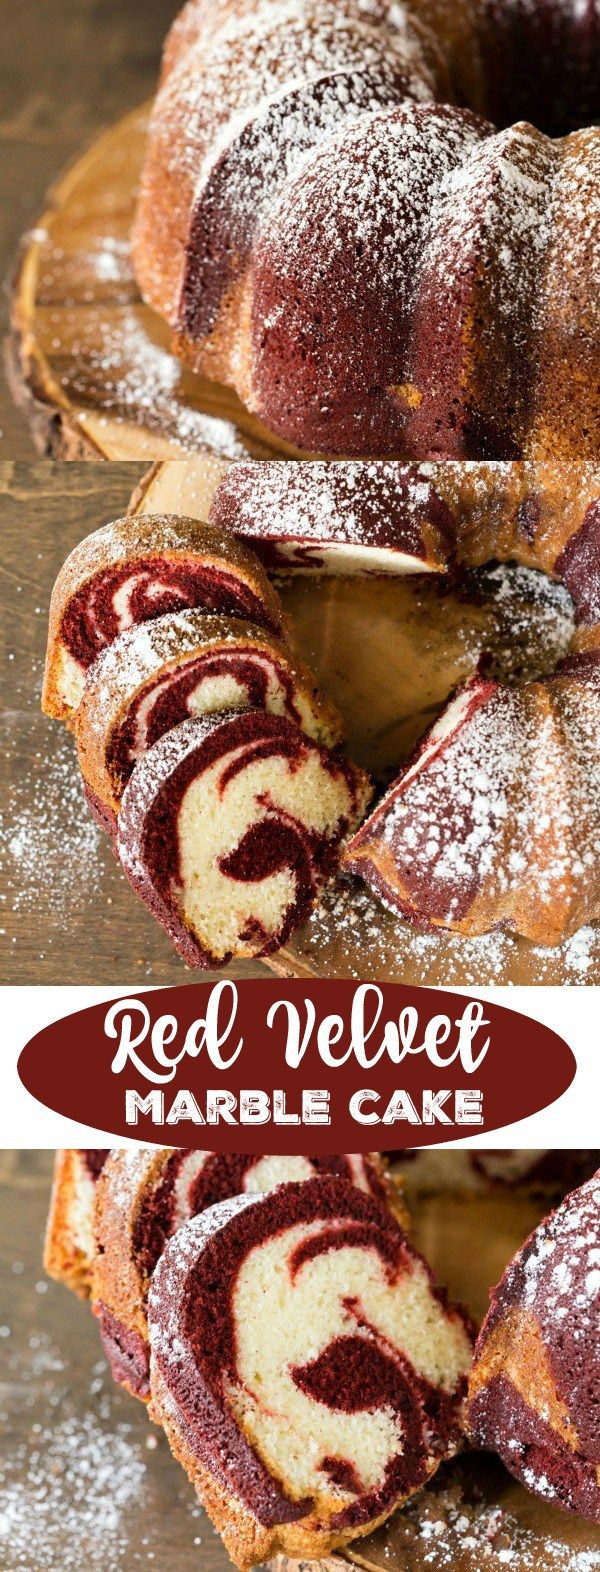 A secret ingredient makes this easy Red Velvet Marble Cake extra moist. Plus, get tips for making the perfect marble swirls.